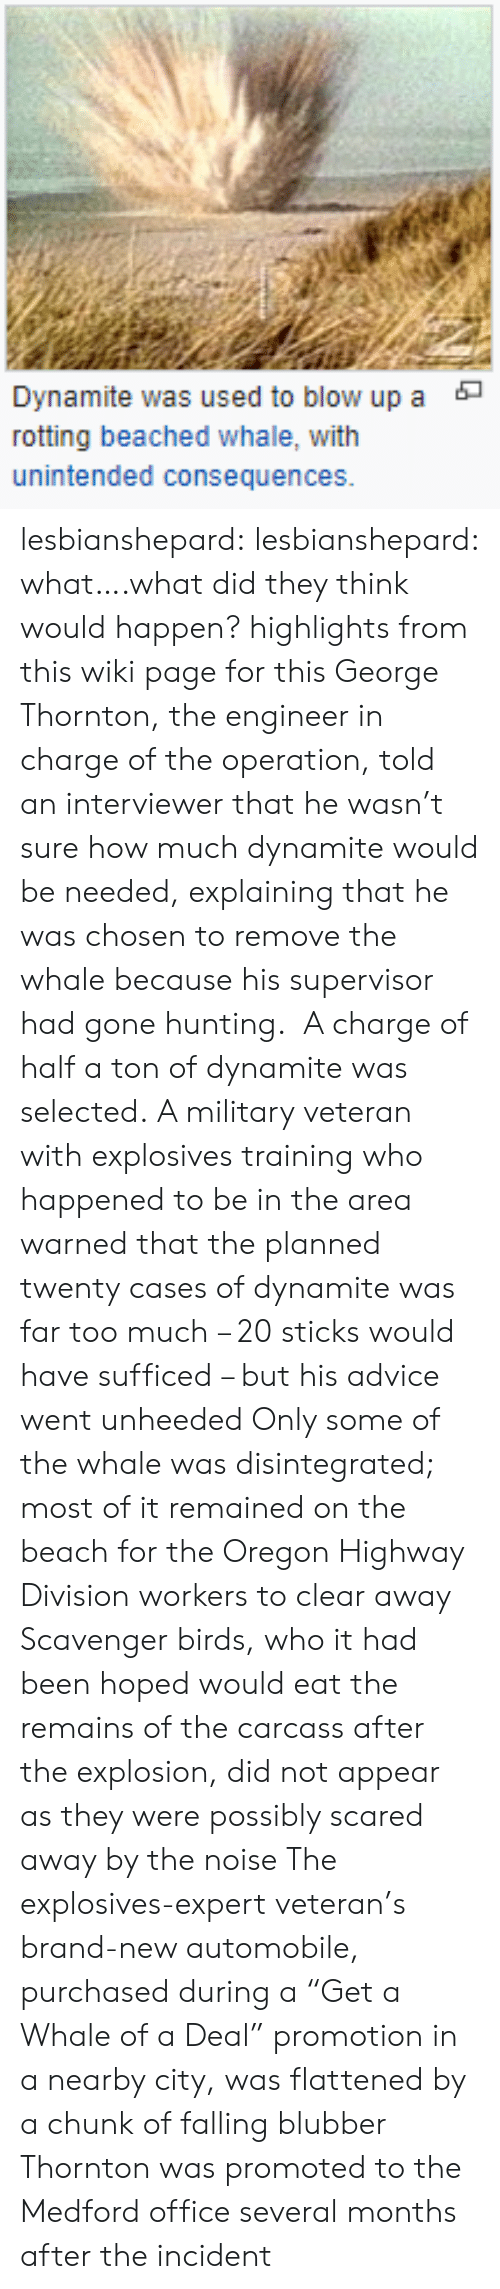 """dynamite: Dynamite was used to blow up a  rotting beached whale, with  unintended consequences. lesbianshepard:  lesbianshepard: what….what did they think would happen? highlights from this wiki page for thisGeorge Thornton, the engineer in charge of the operation, told an interviewer that he wasn't sure how much dynamite would be needed, explaining that he was chosen to remove the whale because his supervisor had gone hunting.   A charge of half a ton of dynamite was selected.     A military veteran with explosives training who happened to be in the area warned that the planned twenty cases of dynamite was far too much – 20 sticks would have sufficed – but his advice went unheeded     Only some of the whale was disintegrated; most of it remained on the beach for the Oregon Highway Division workers to clear away  Scavenger birds, who it had been hoped would eat the remains of the carcass after the explosion, did not appear as they were possibly scared away by the noise    The explosives-expert veteran's brand-new automobile, purchased during a """"Get a Whale of a Deal"""" promotion in a nearby city, was flattened by a chunk of falling blubber  Thornton was promoted to the Medford office several months after the incident"""